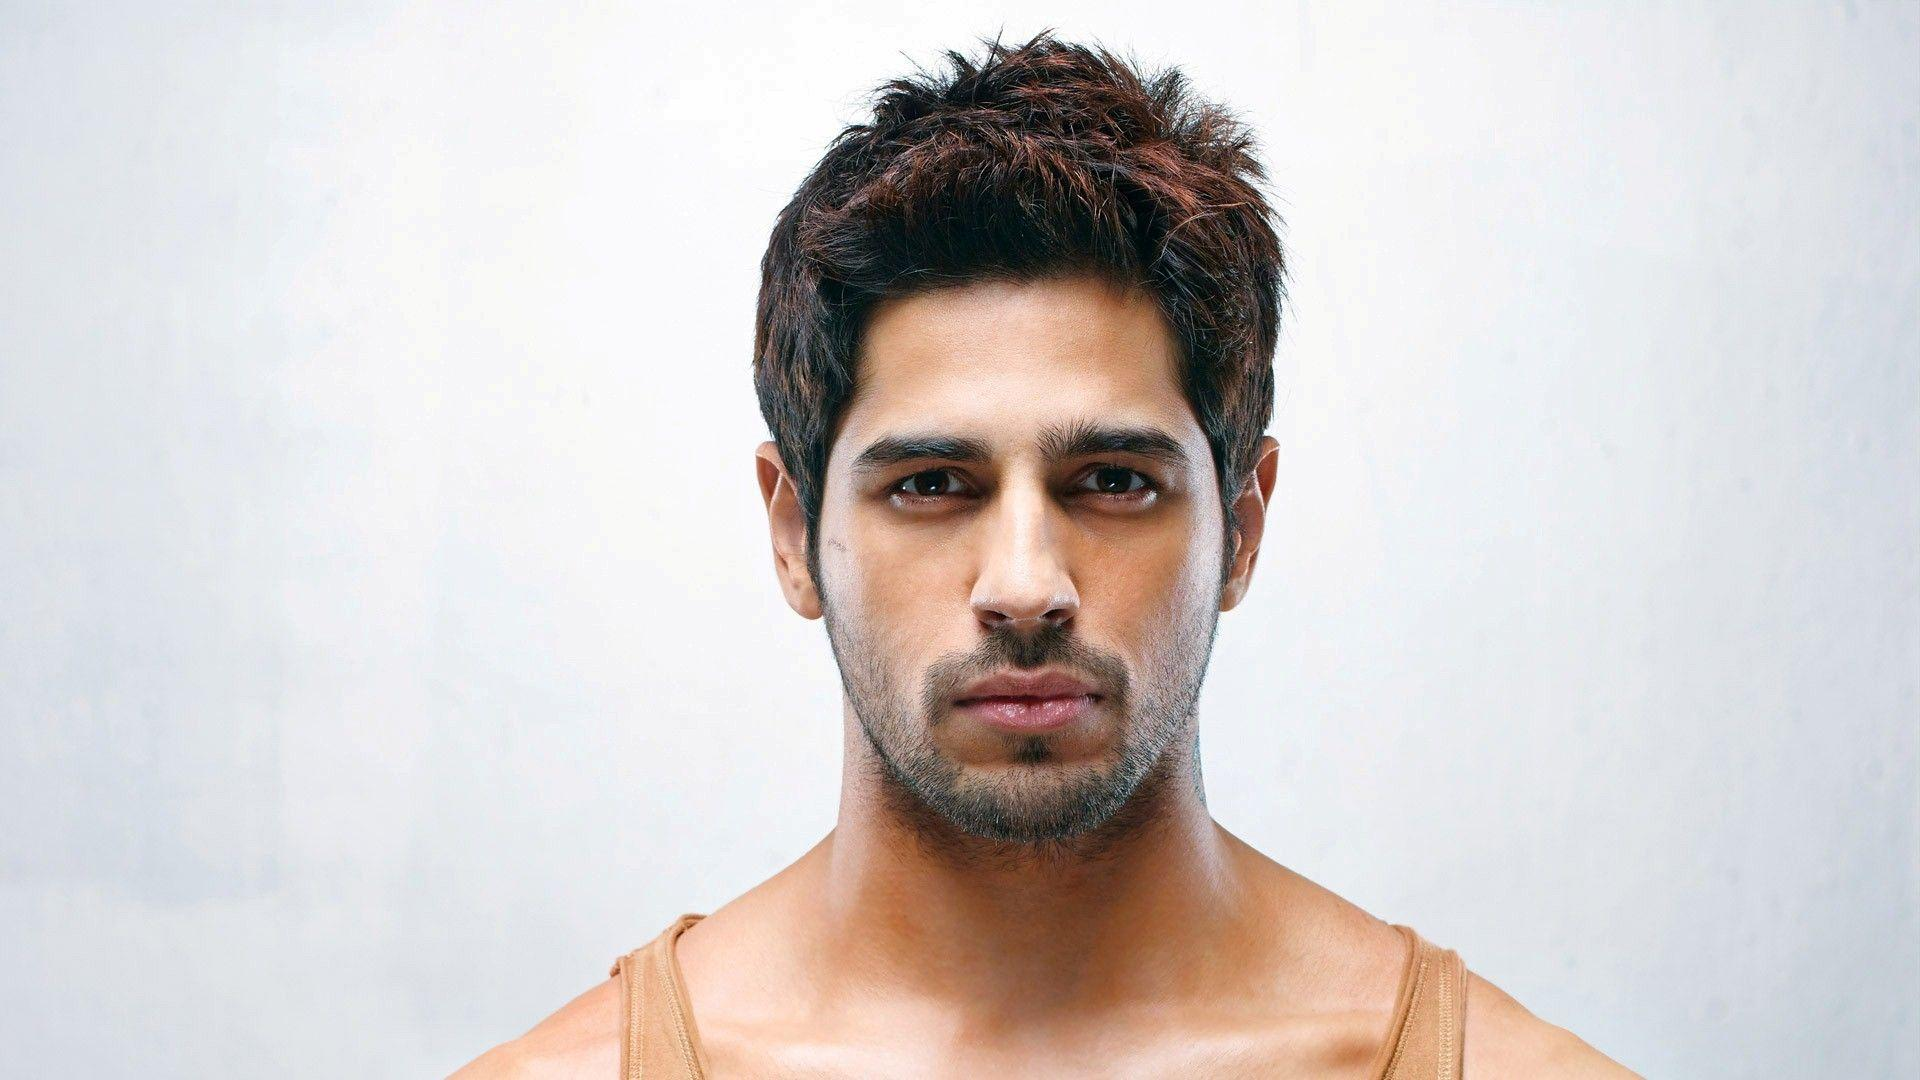 Sidharth Malhotra New Bollywood Handsome Actor HD Wallpapers | HD ...